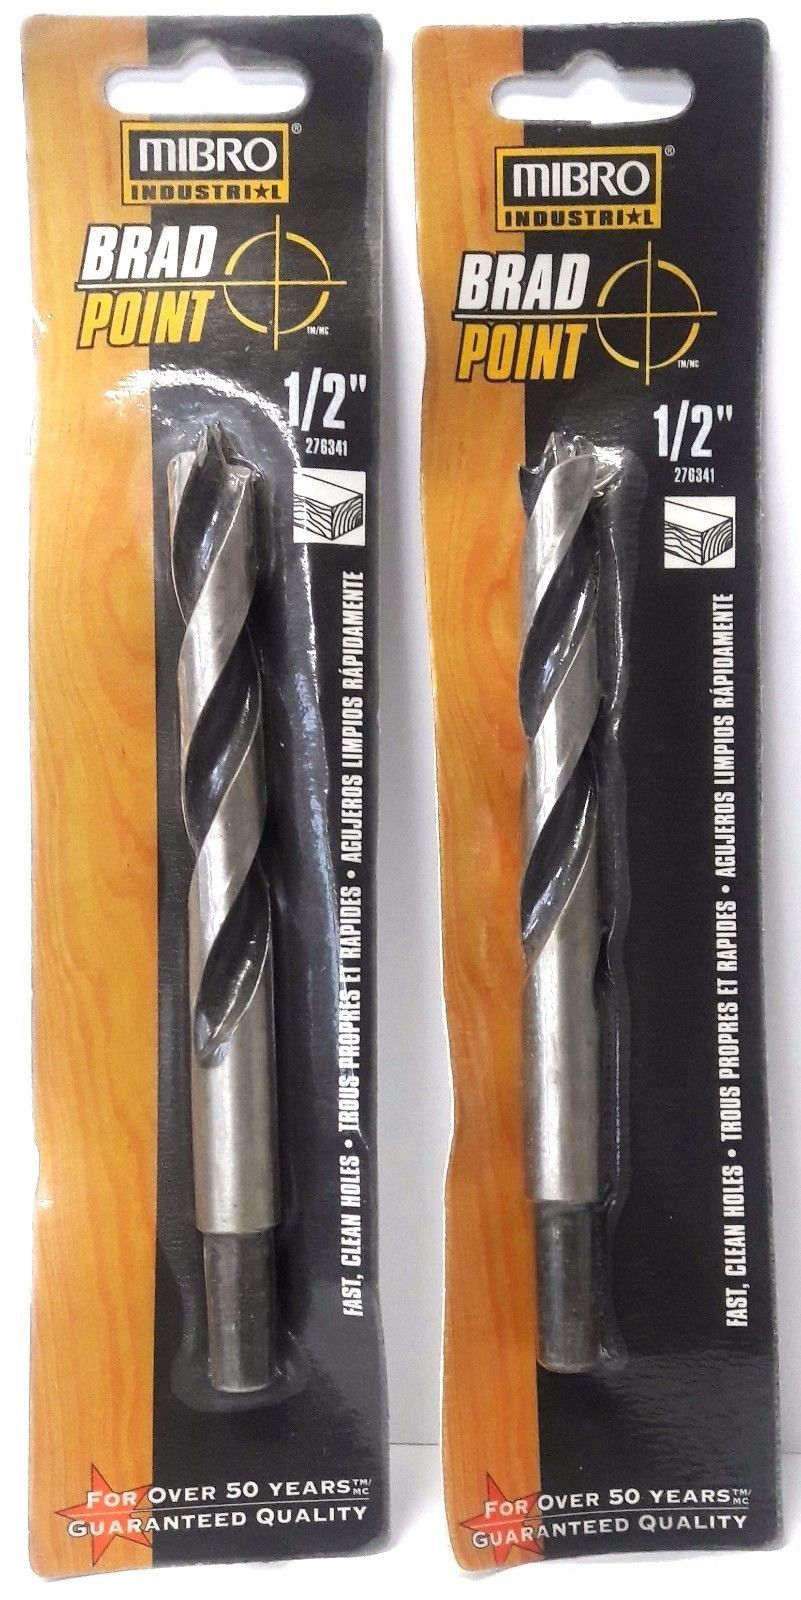 "Primary image for Mibro 276341 1/2"" Brad Point Drill Bits Reduced Shank 2PKS"